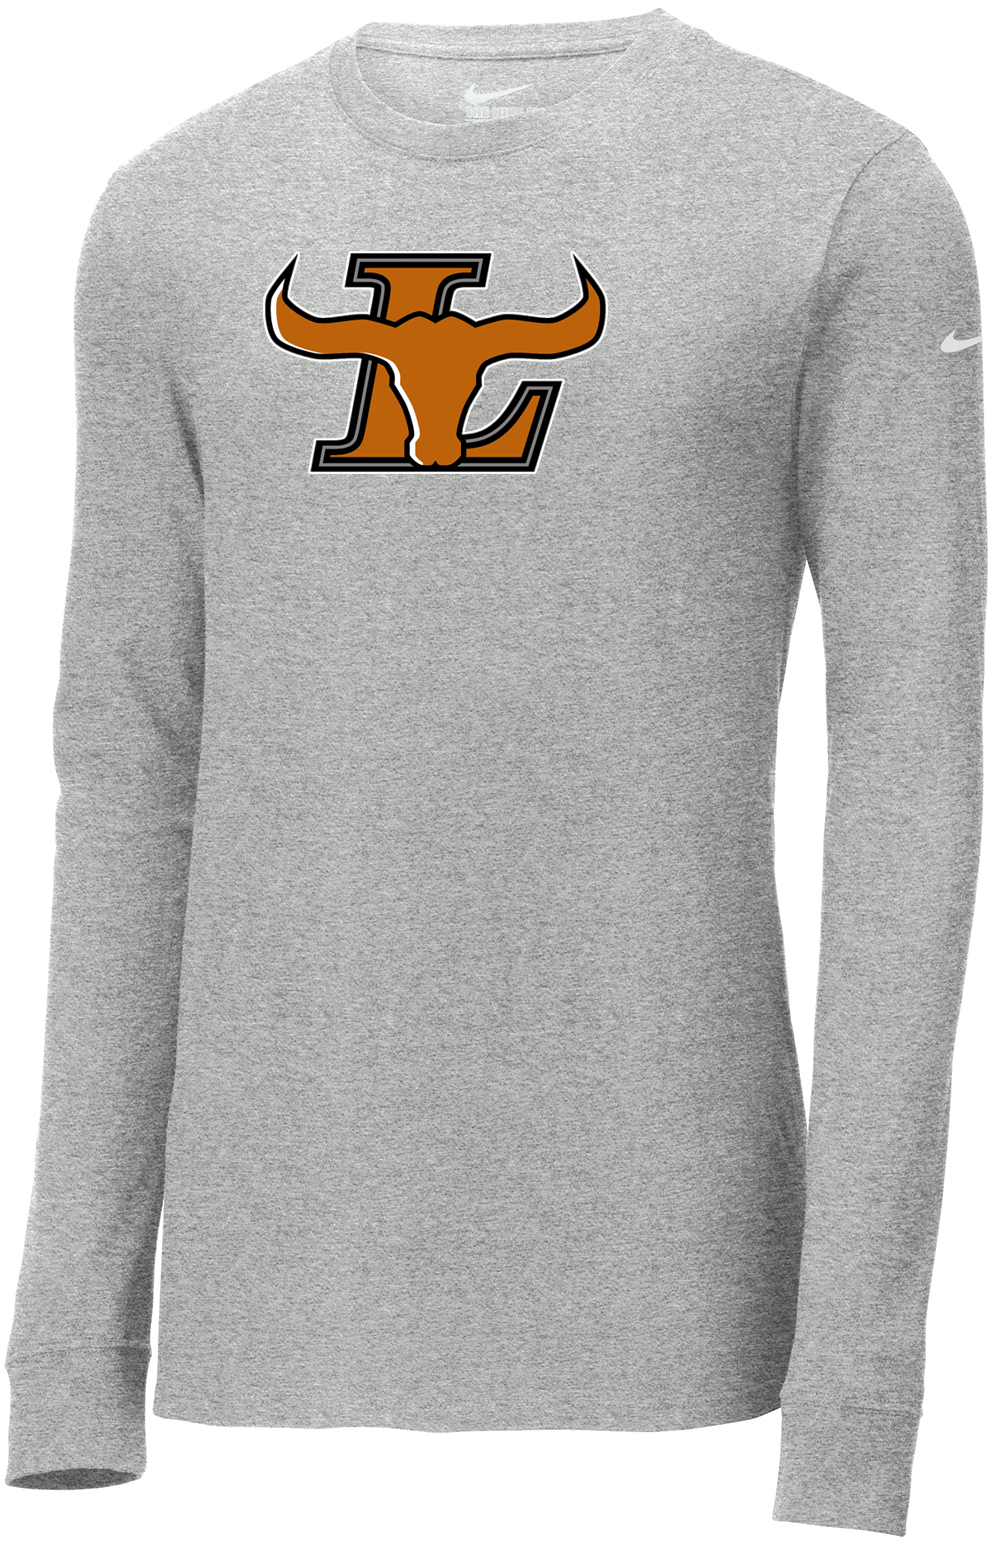 Lanier Baseball Nike Core Cotton Long Sleeve Tee